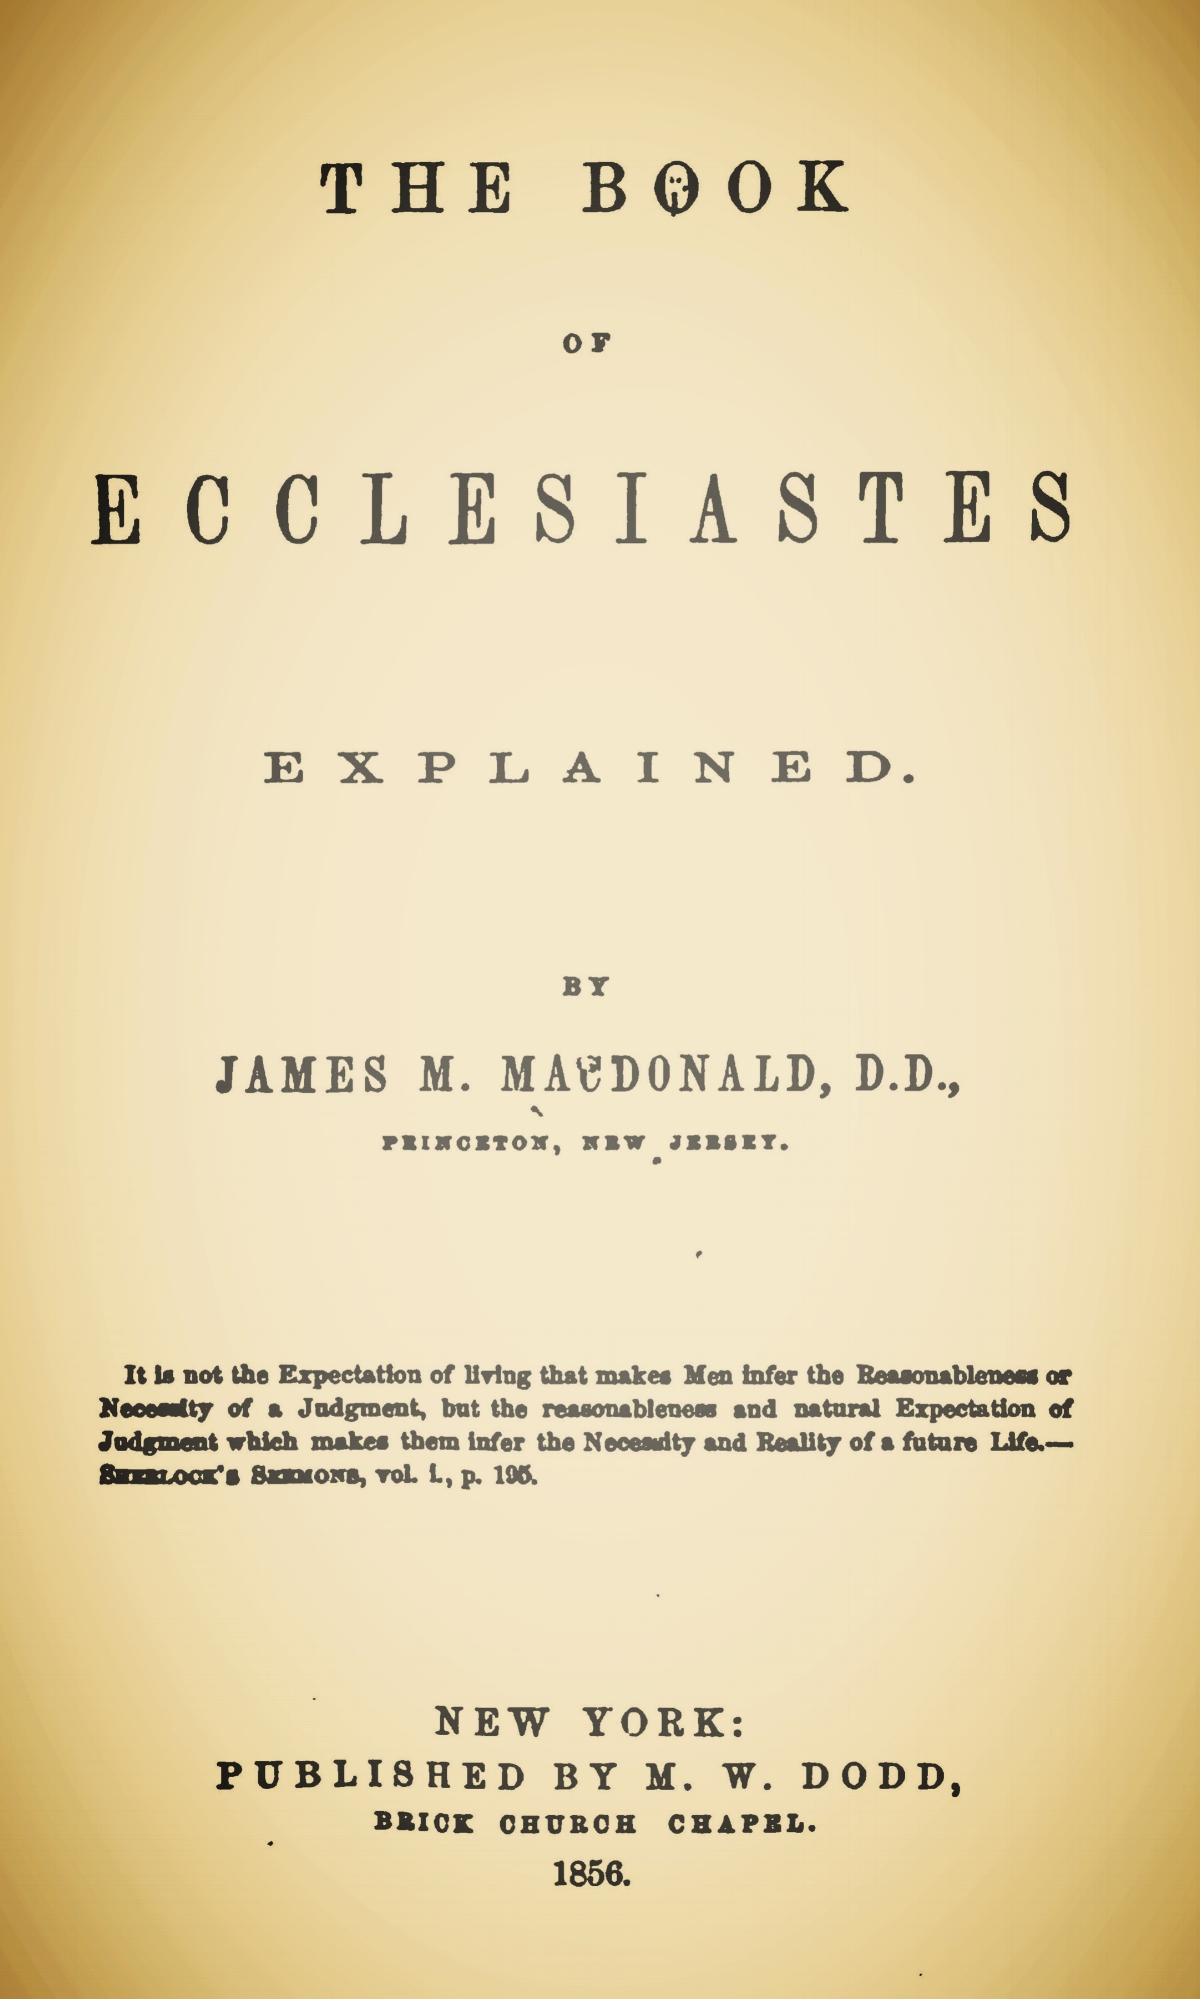 McDonald, James Madison, The Book of Ecclesiastes Explained Title Page.jpg